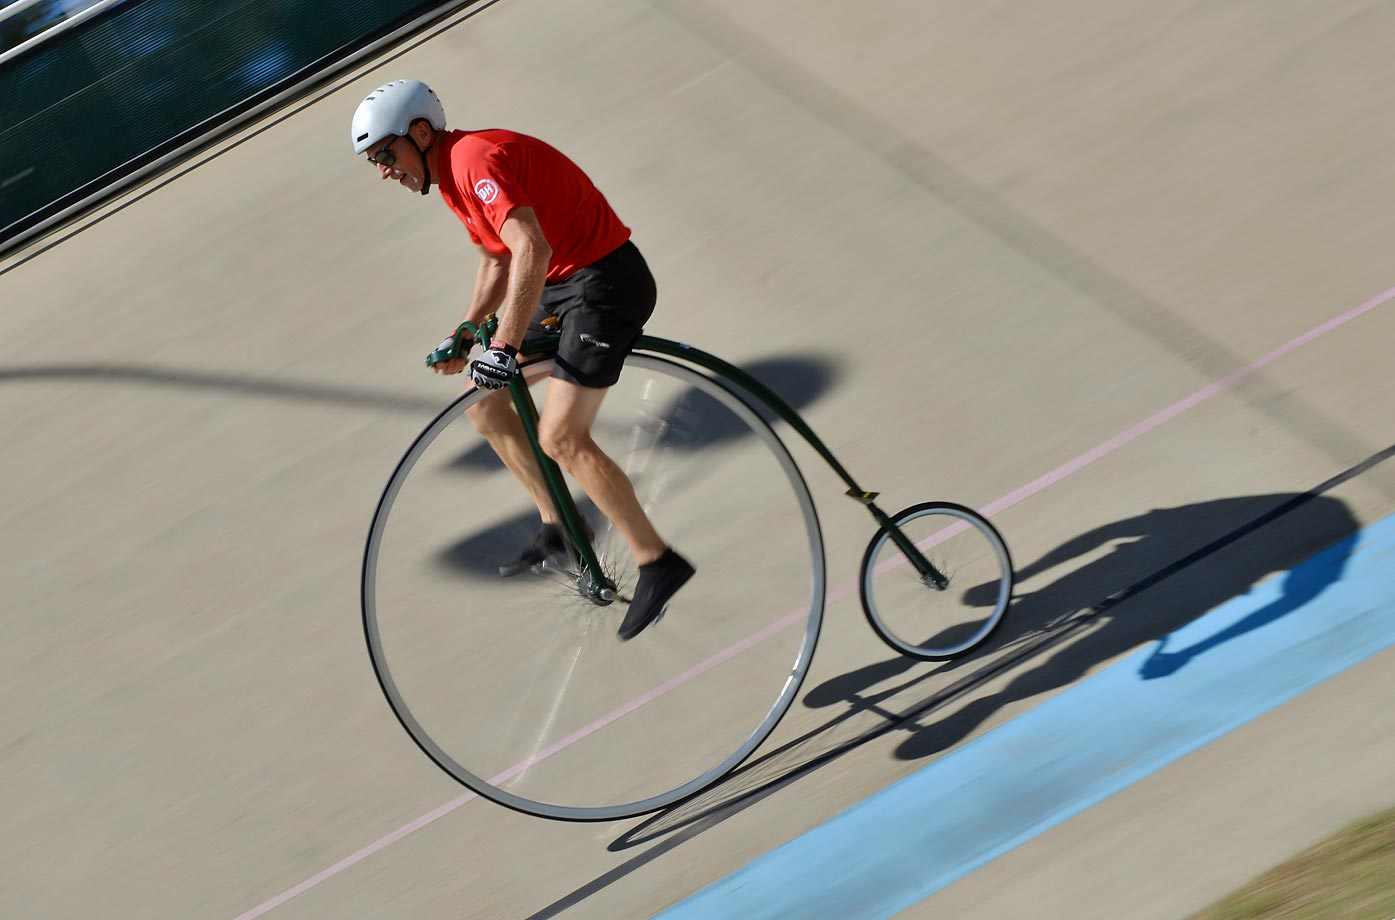 A cyclist races a penny farthing bicycle at the 2015 Sydney Classic Bicycle Show.